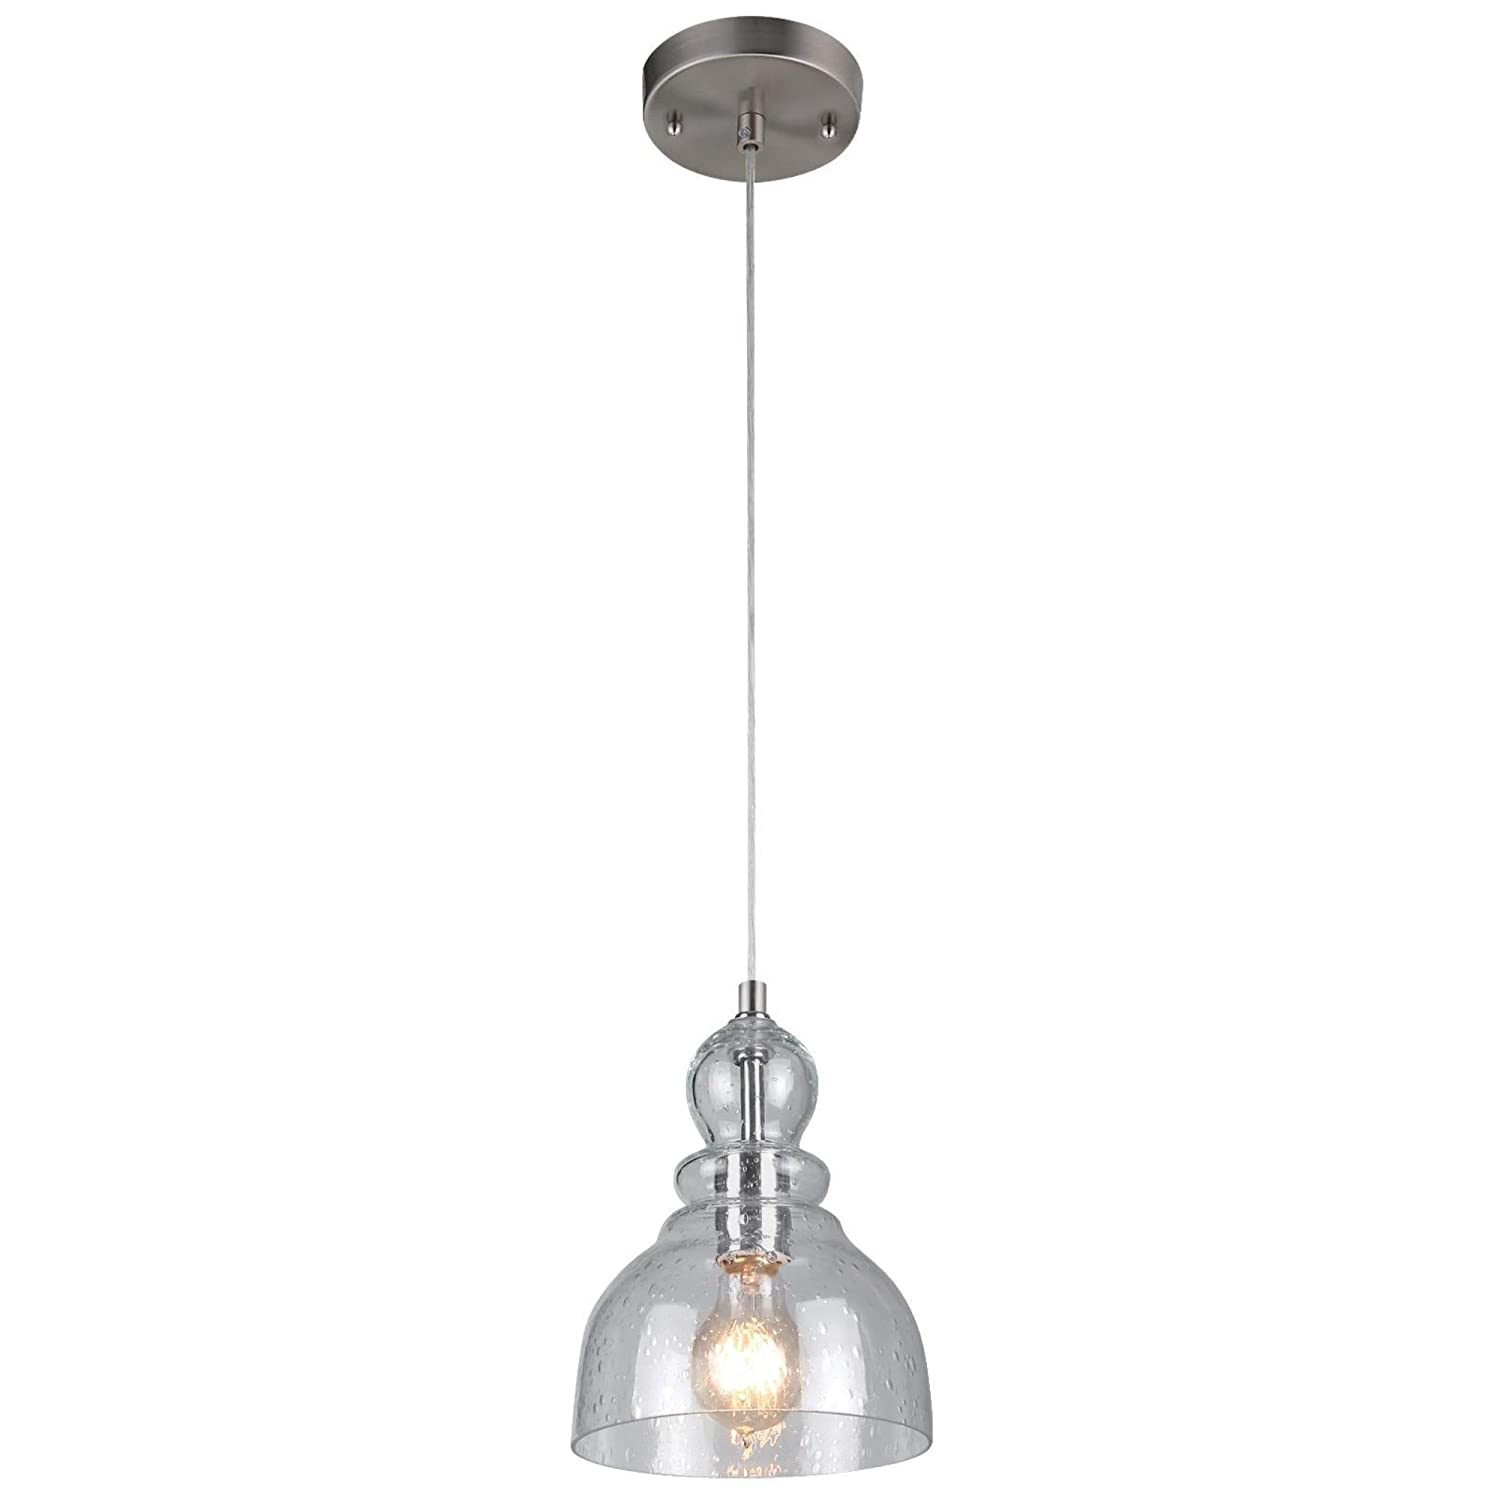 Westinghouse 6100700 One-Light Indoor Mini Pendant, Brushed Nickel Finish with Clear Seeded Glass